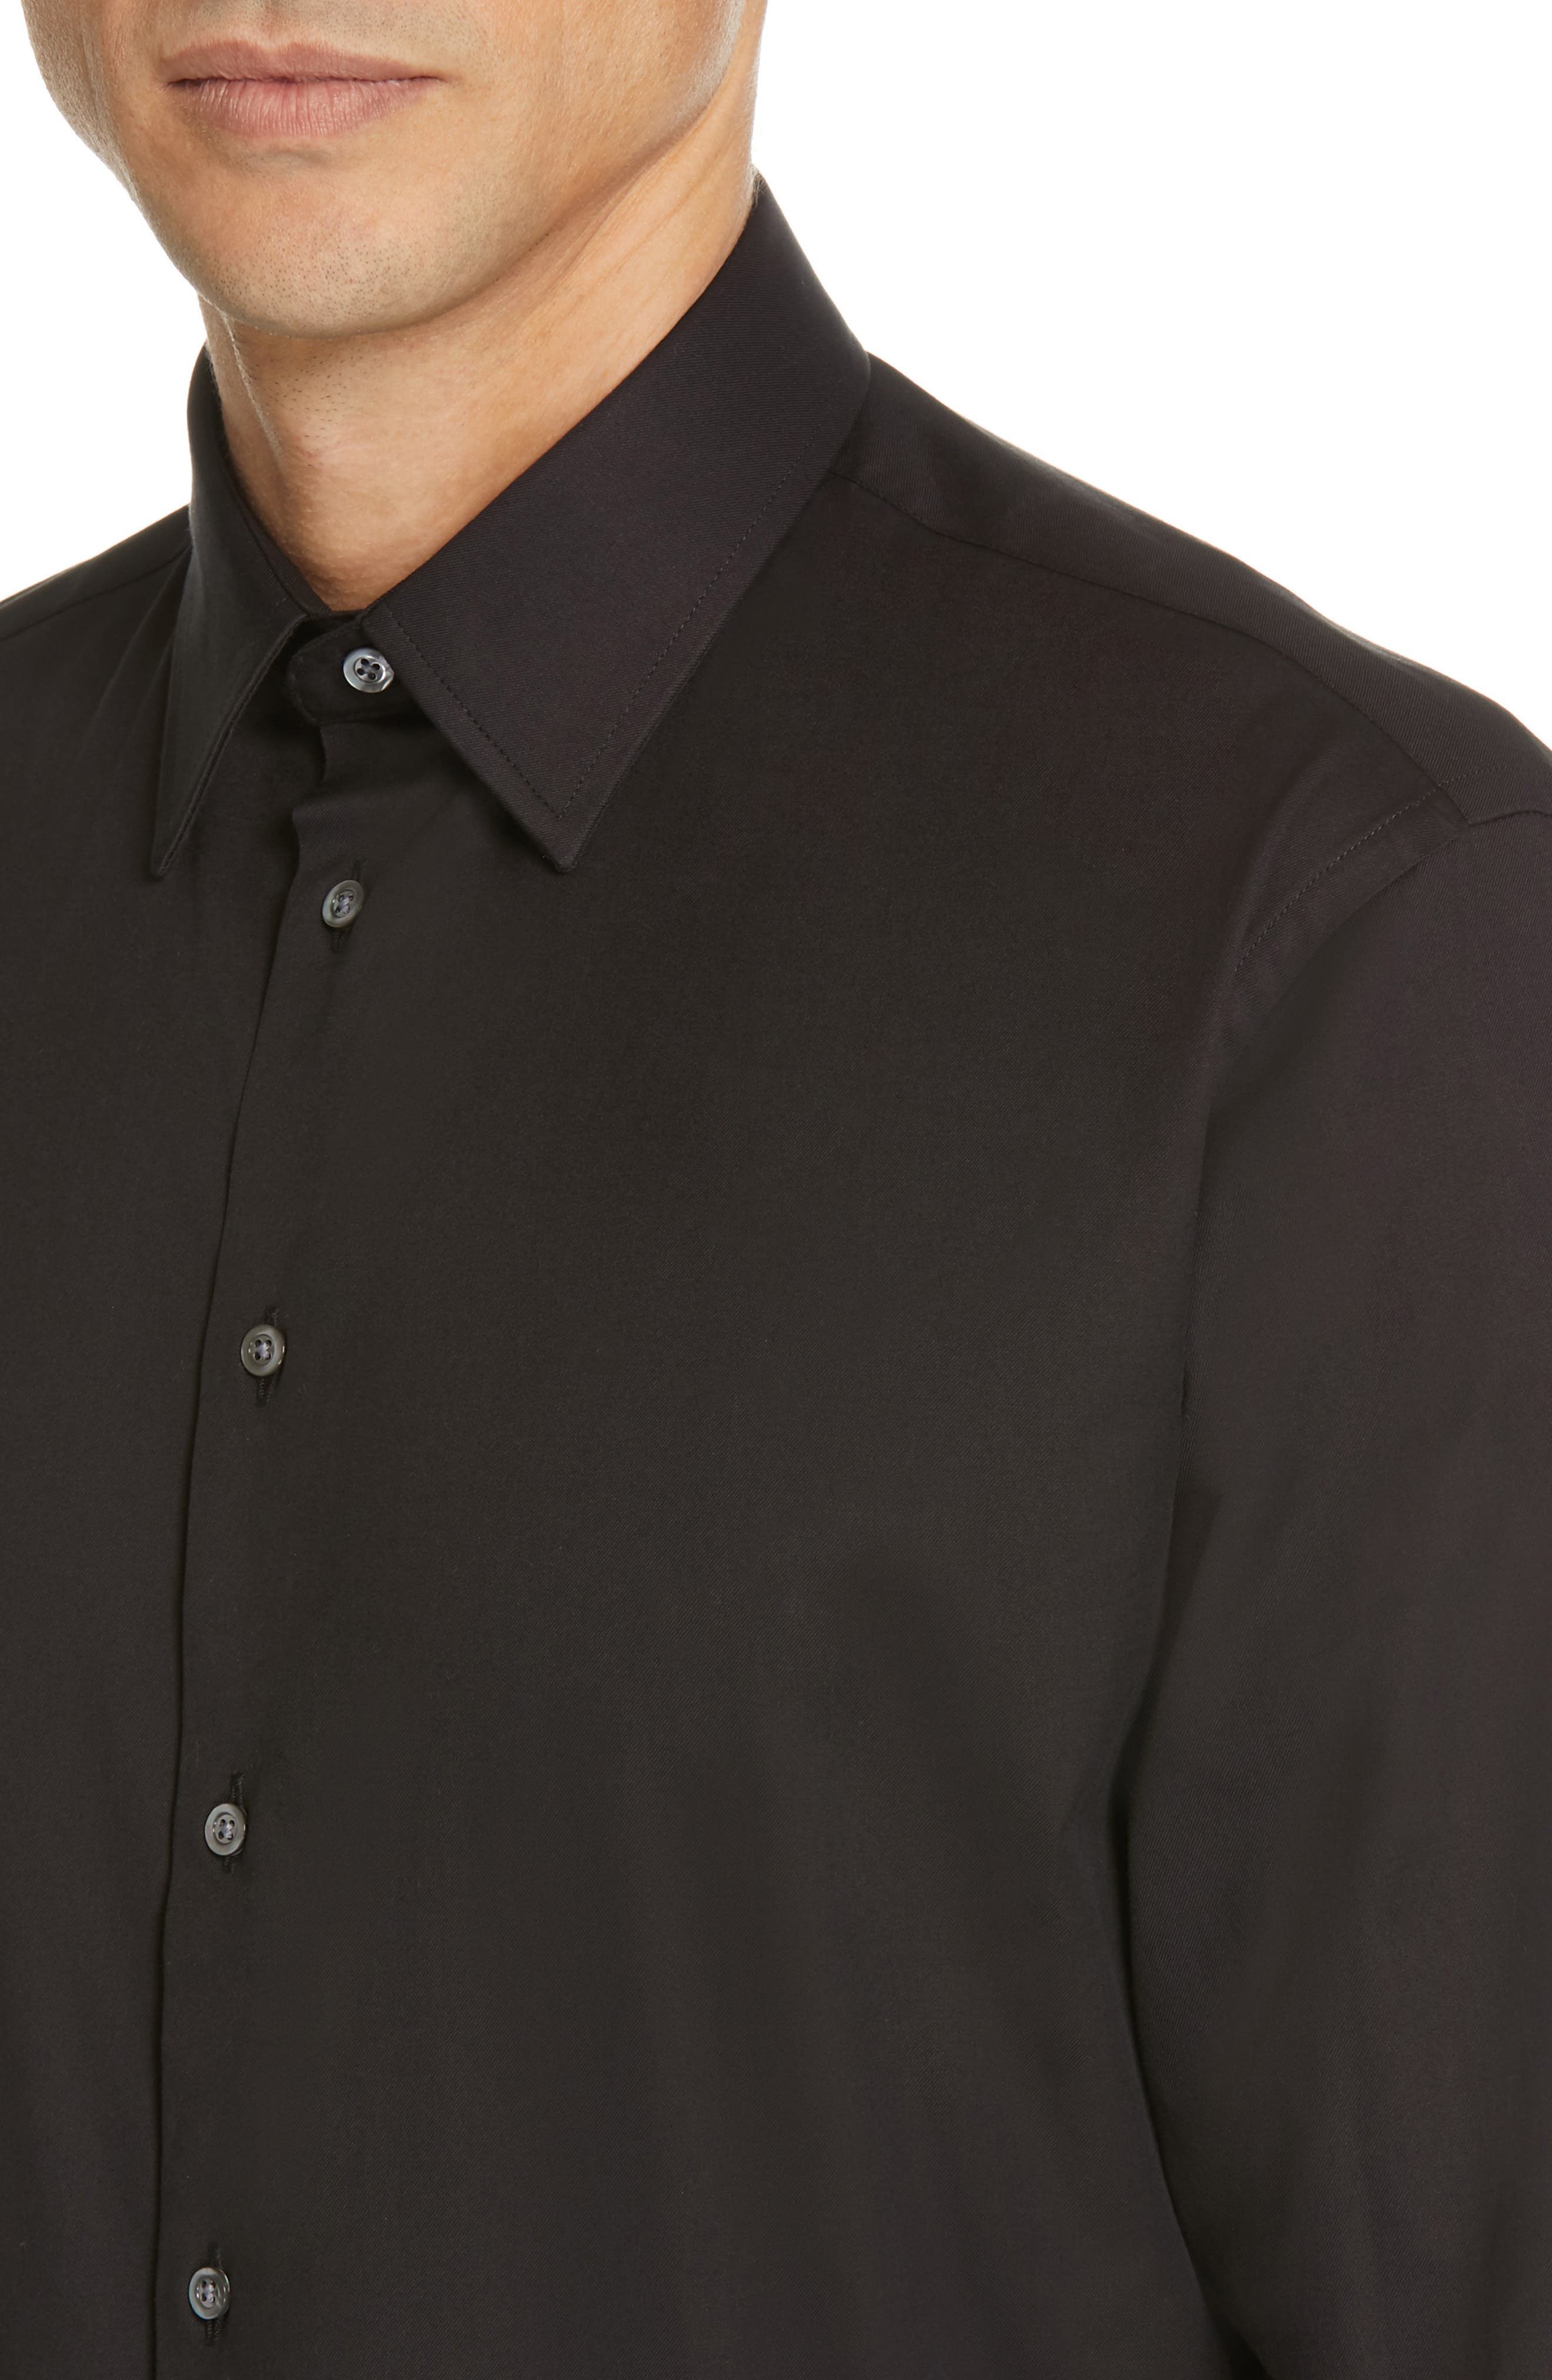 567ebc0d54 Big and Tall Clothing: Men's Emporio Armani Suits and More | Nordstrom